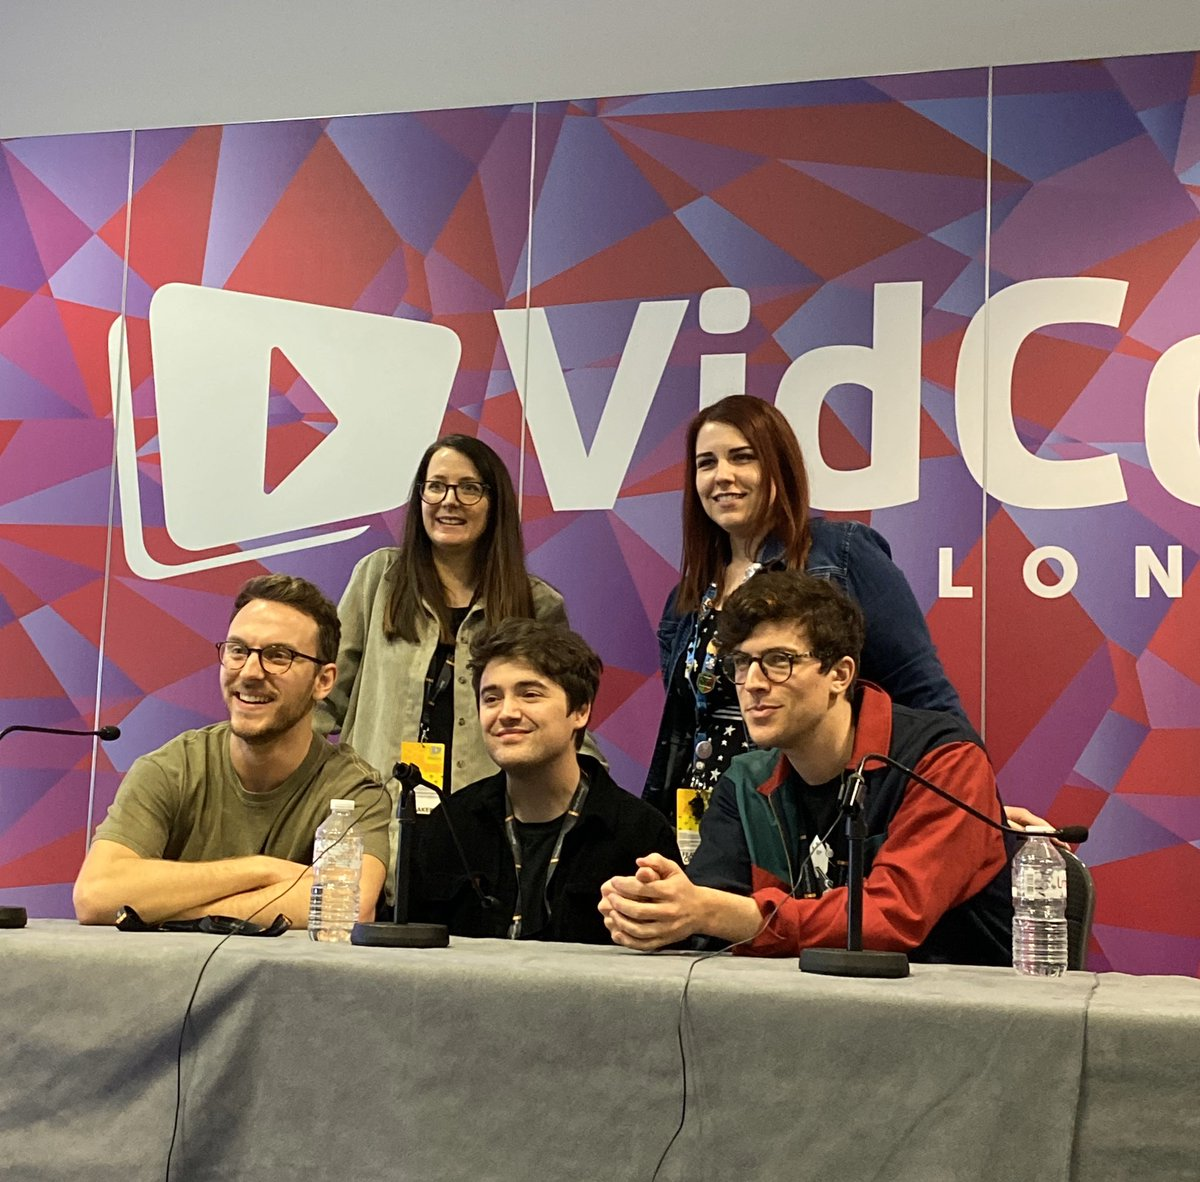 Another great panel, a chat with the storytellers of tomorrow #VidConLDN #VidConLDNStorytellers @kickthepj @DeanDobbs – at ExCeL London